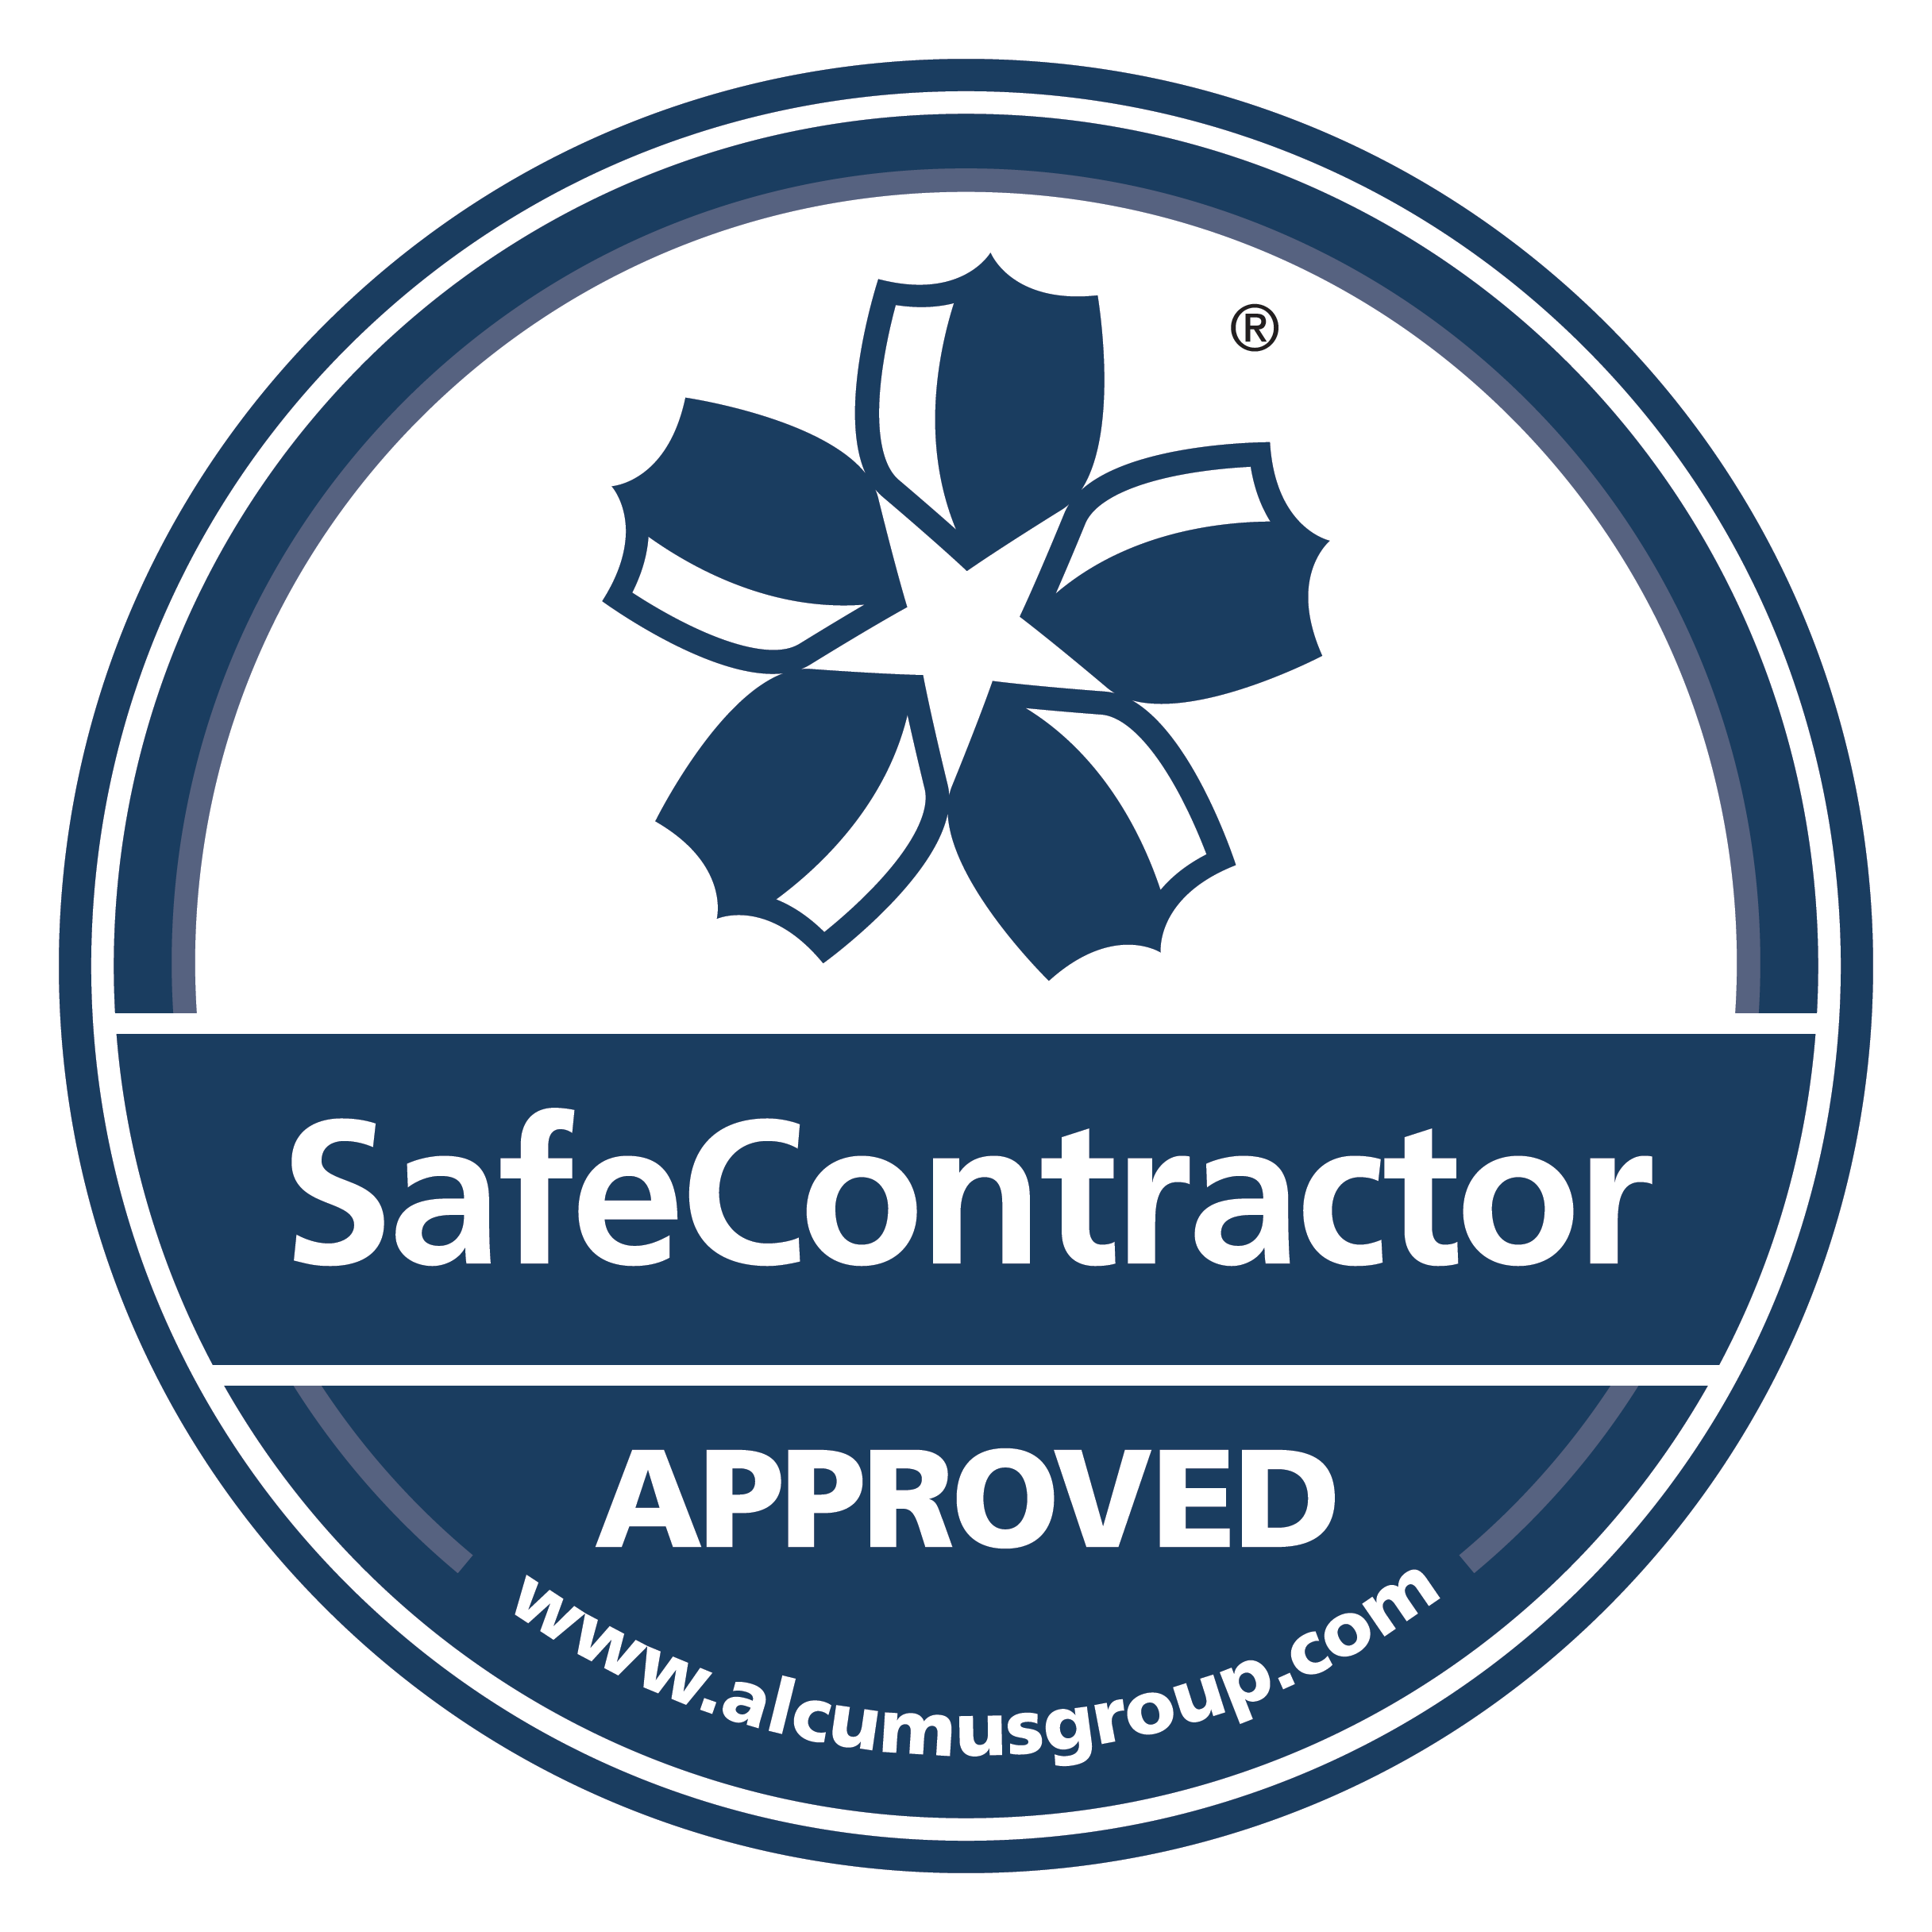 Safecontractor approved certificate logo